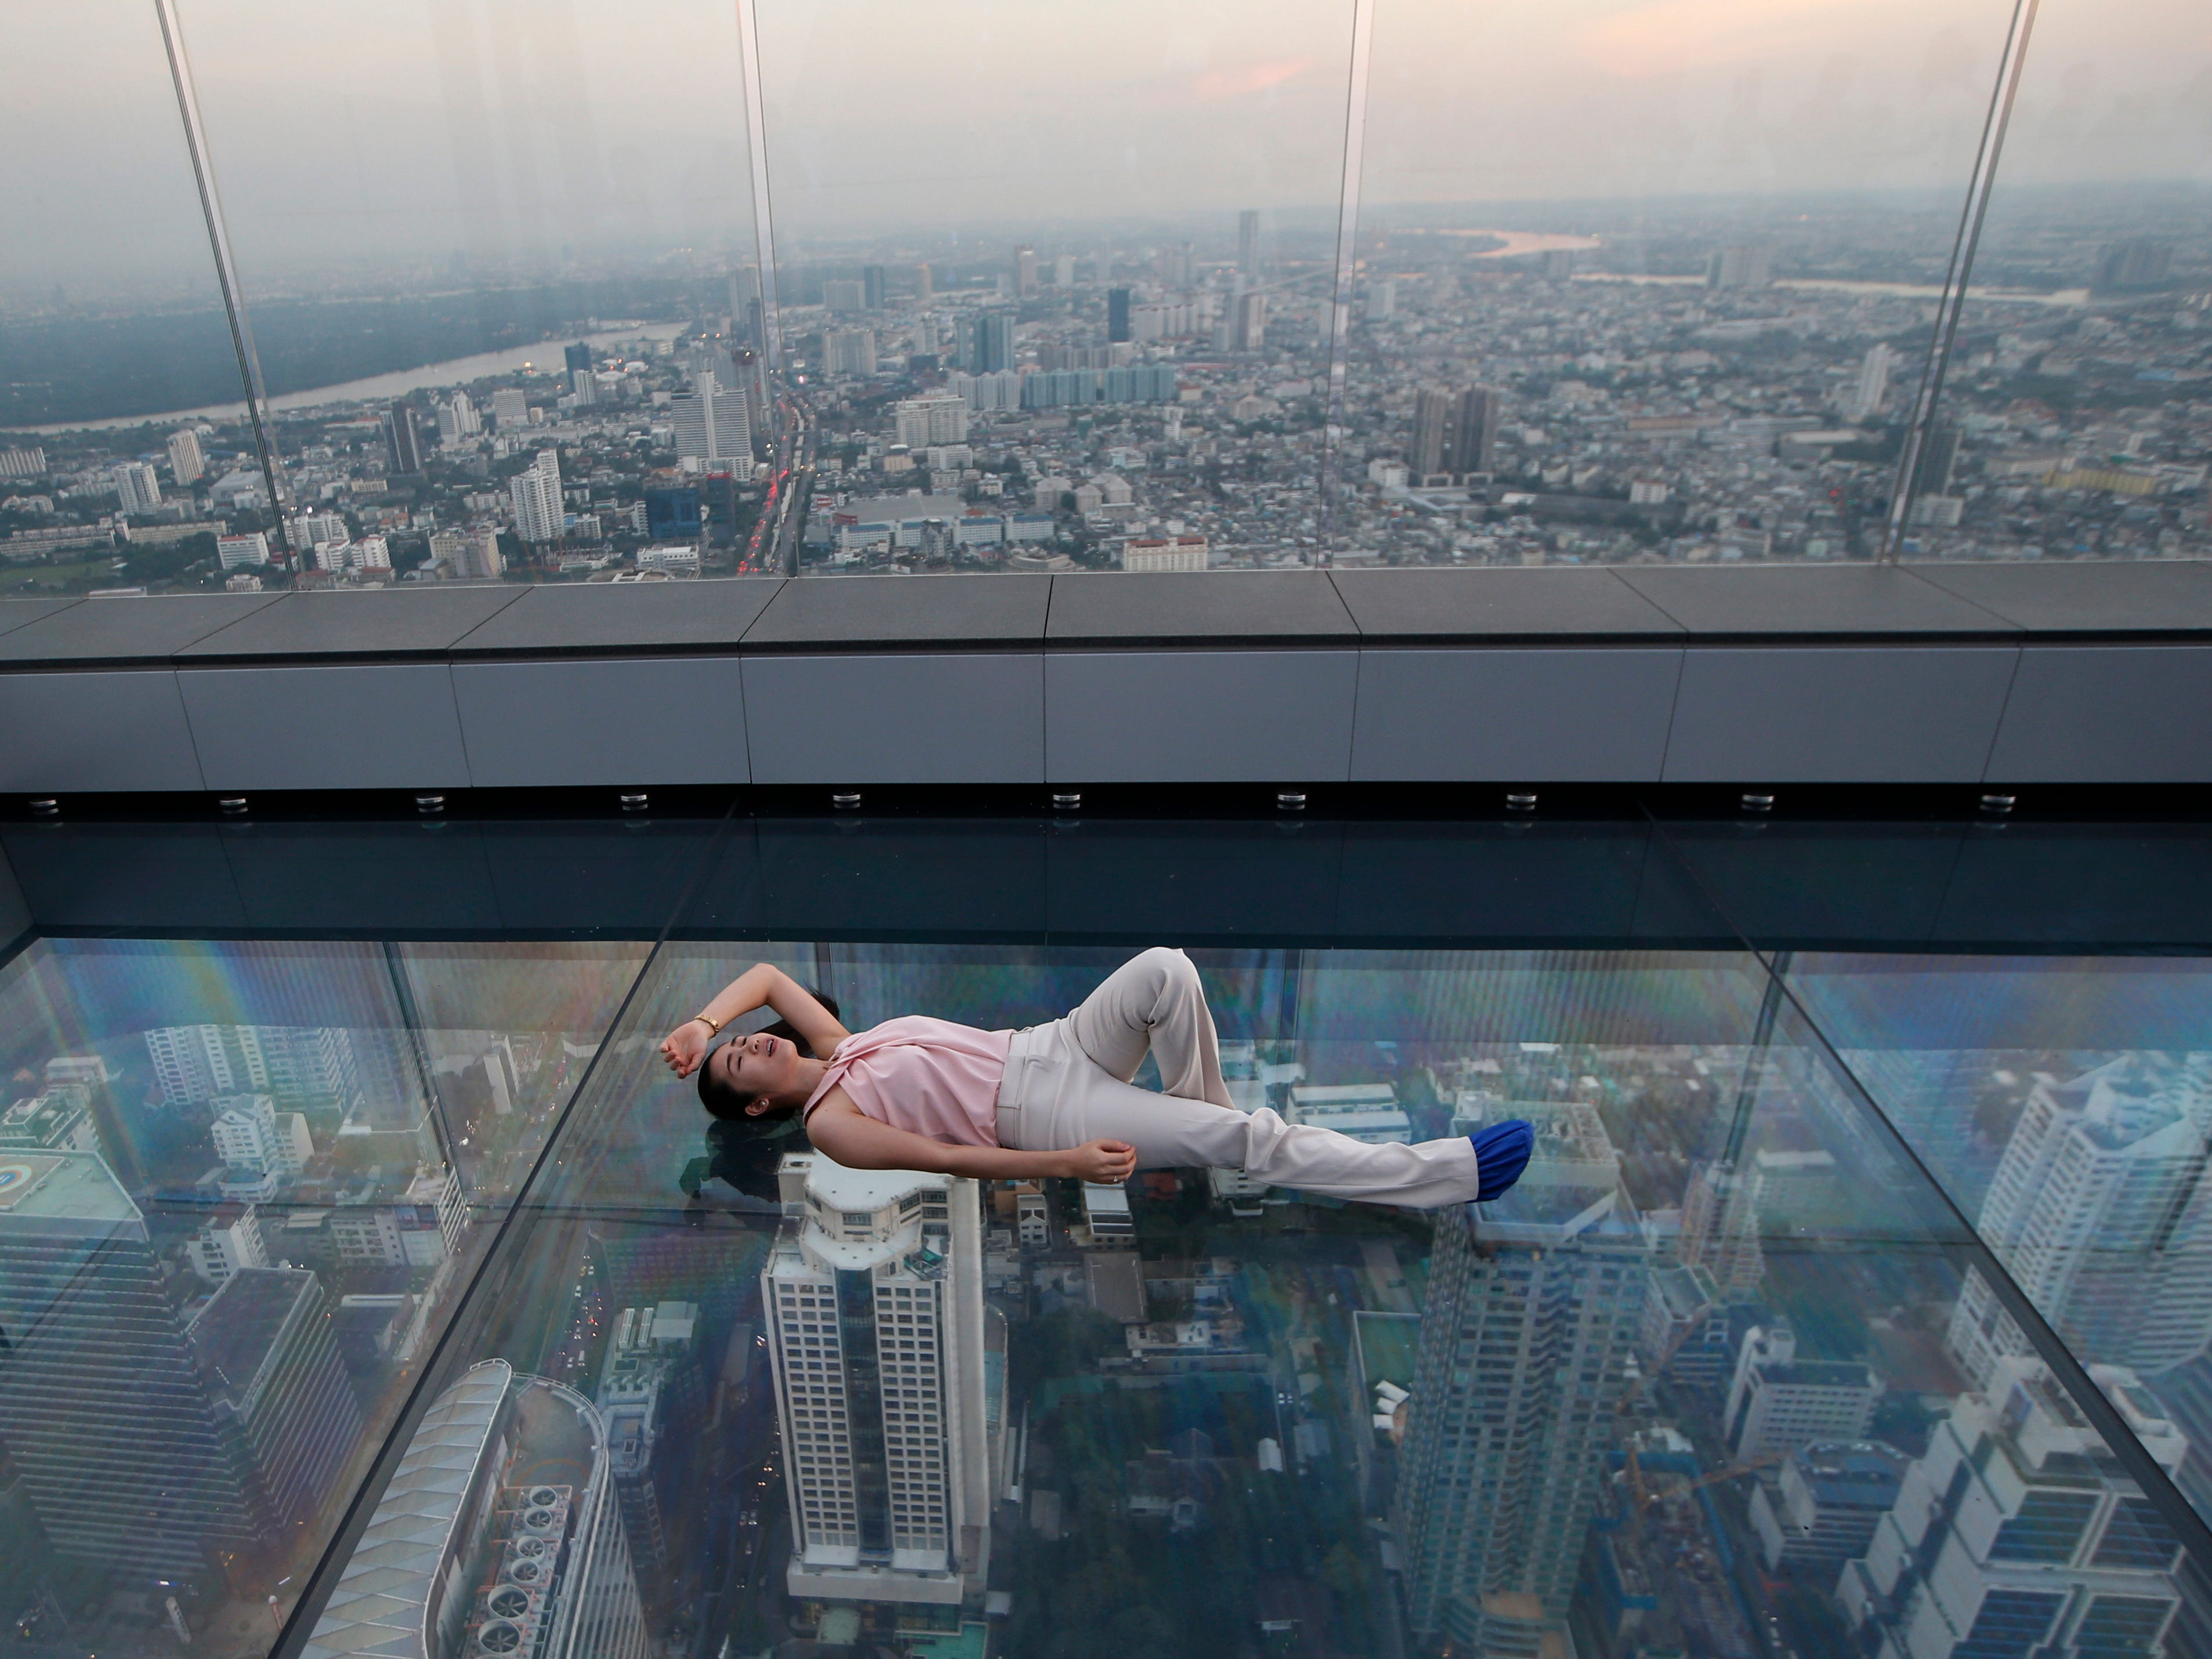 A woman lies on the glass bottom deck of the King Power Mahanakhon building high above Bangkok, Thailand, Wednesday, Nov. 21, 2018. The King Power Mahanakhon building, currently Thailand's tallest at 314 meters (1,030 feet) with 78 floors, has a 360-degree view of Bangkok.